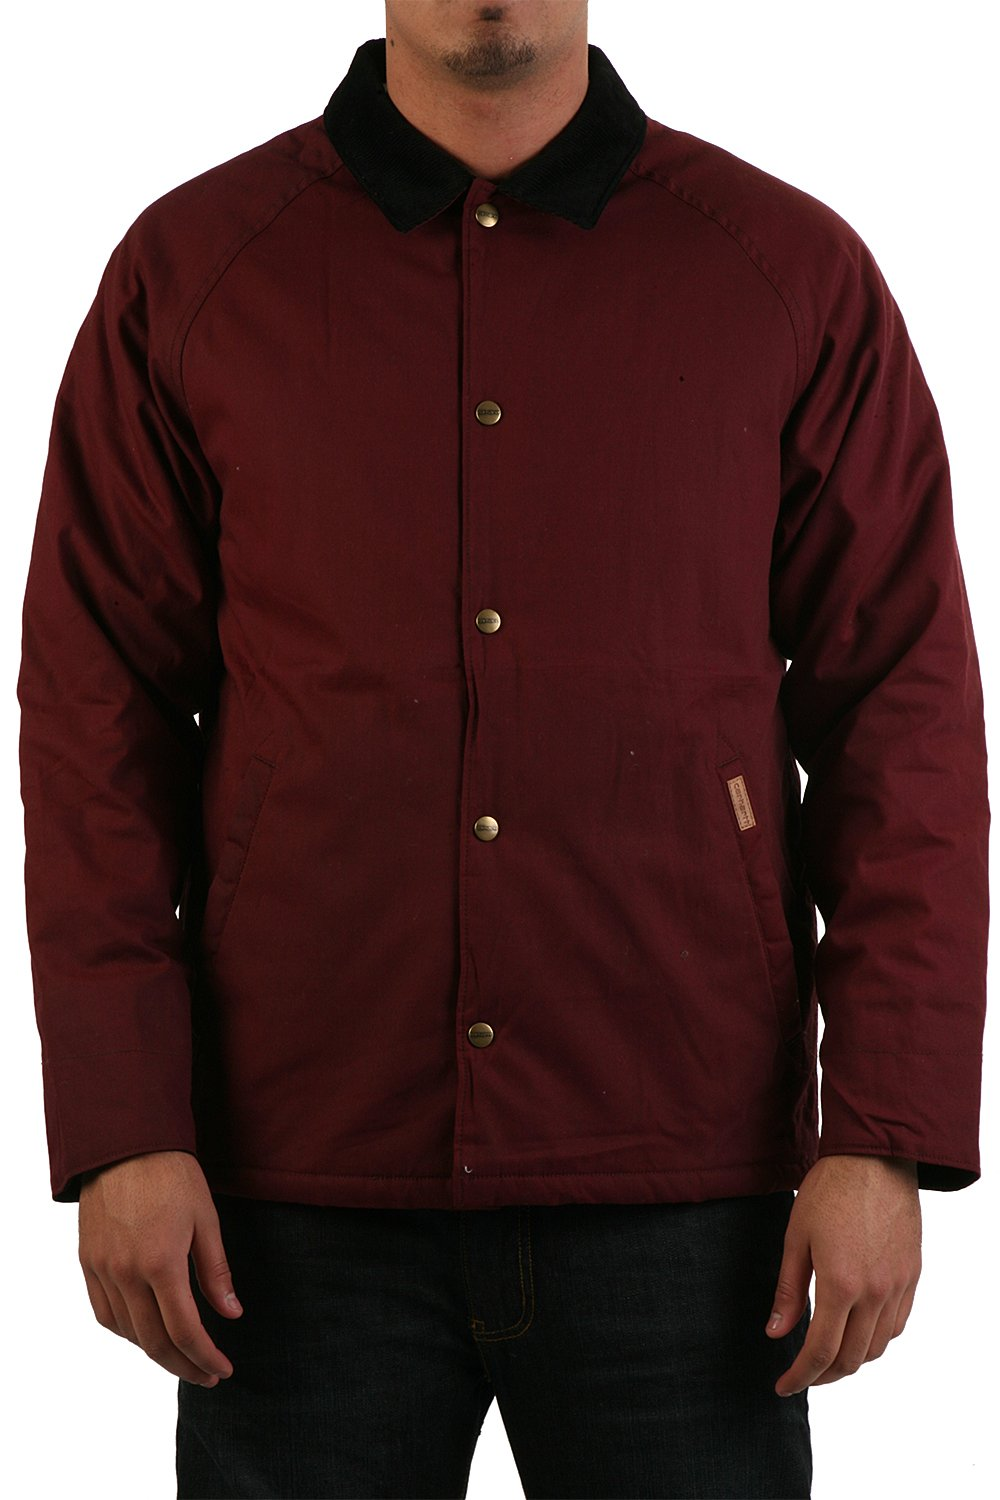 Men 39 s carhartt james jacket in burgundy red i013291 6100 for Carhartt burgundy t shirt